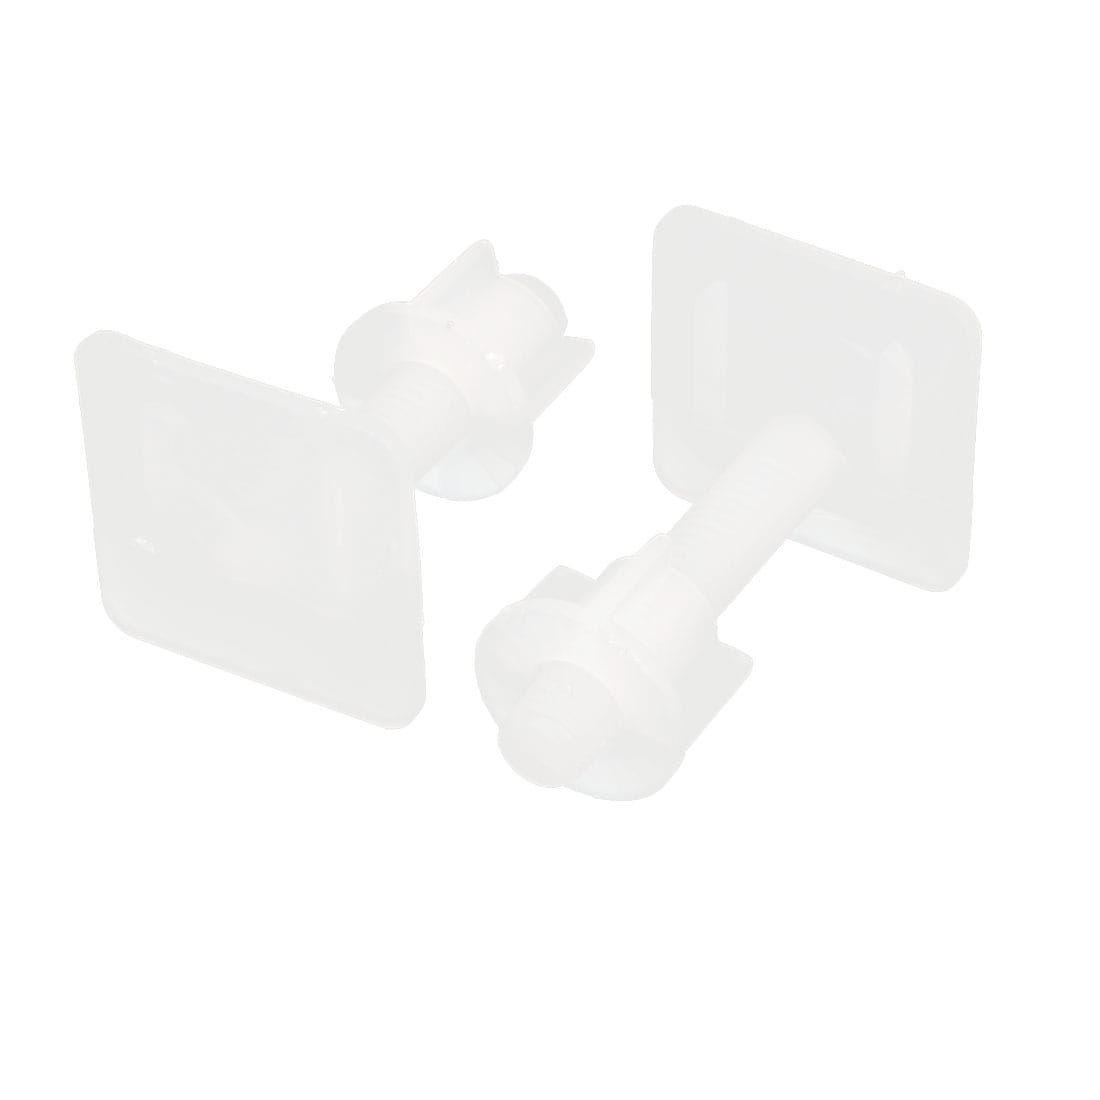 square shaped toilet seat. 10mm Thread Square Shaped Toilet Seat Hinge Bolts 57mm Long 2pcs